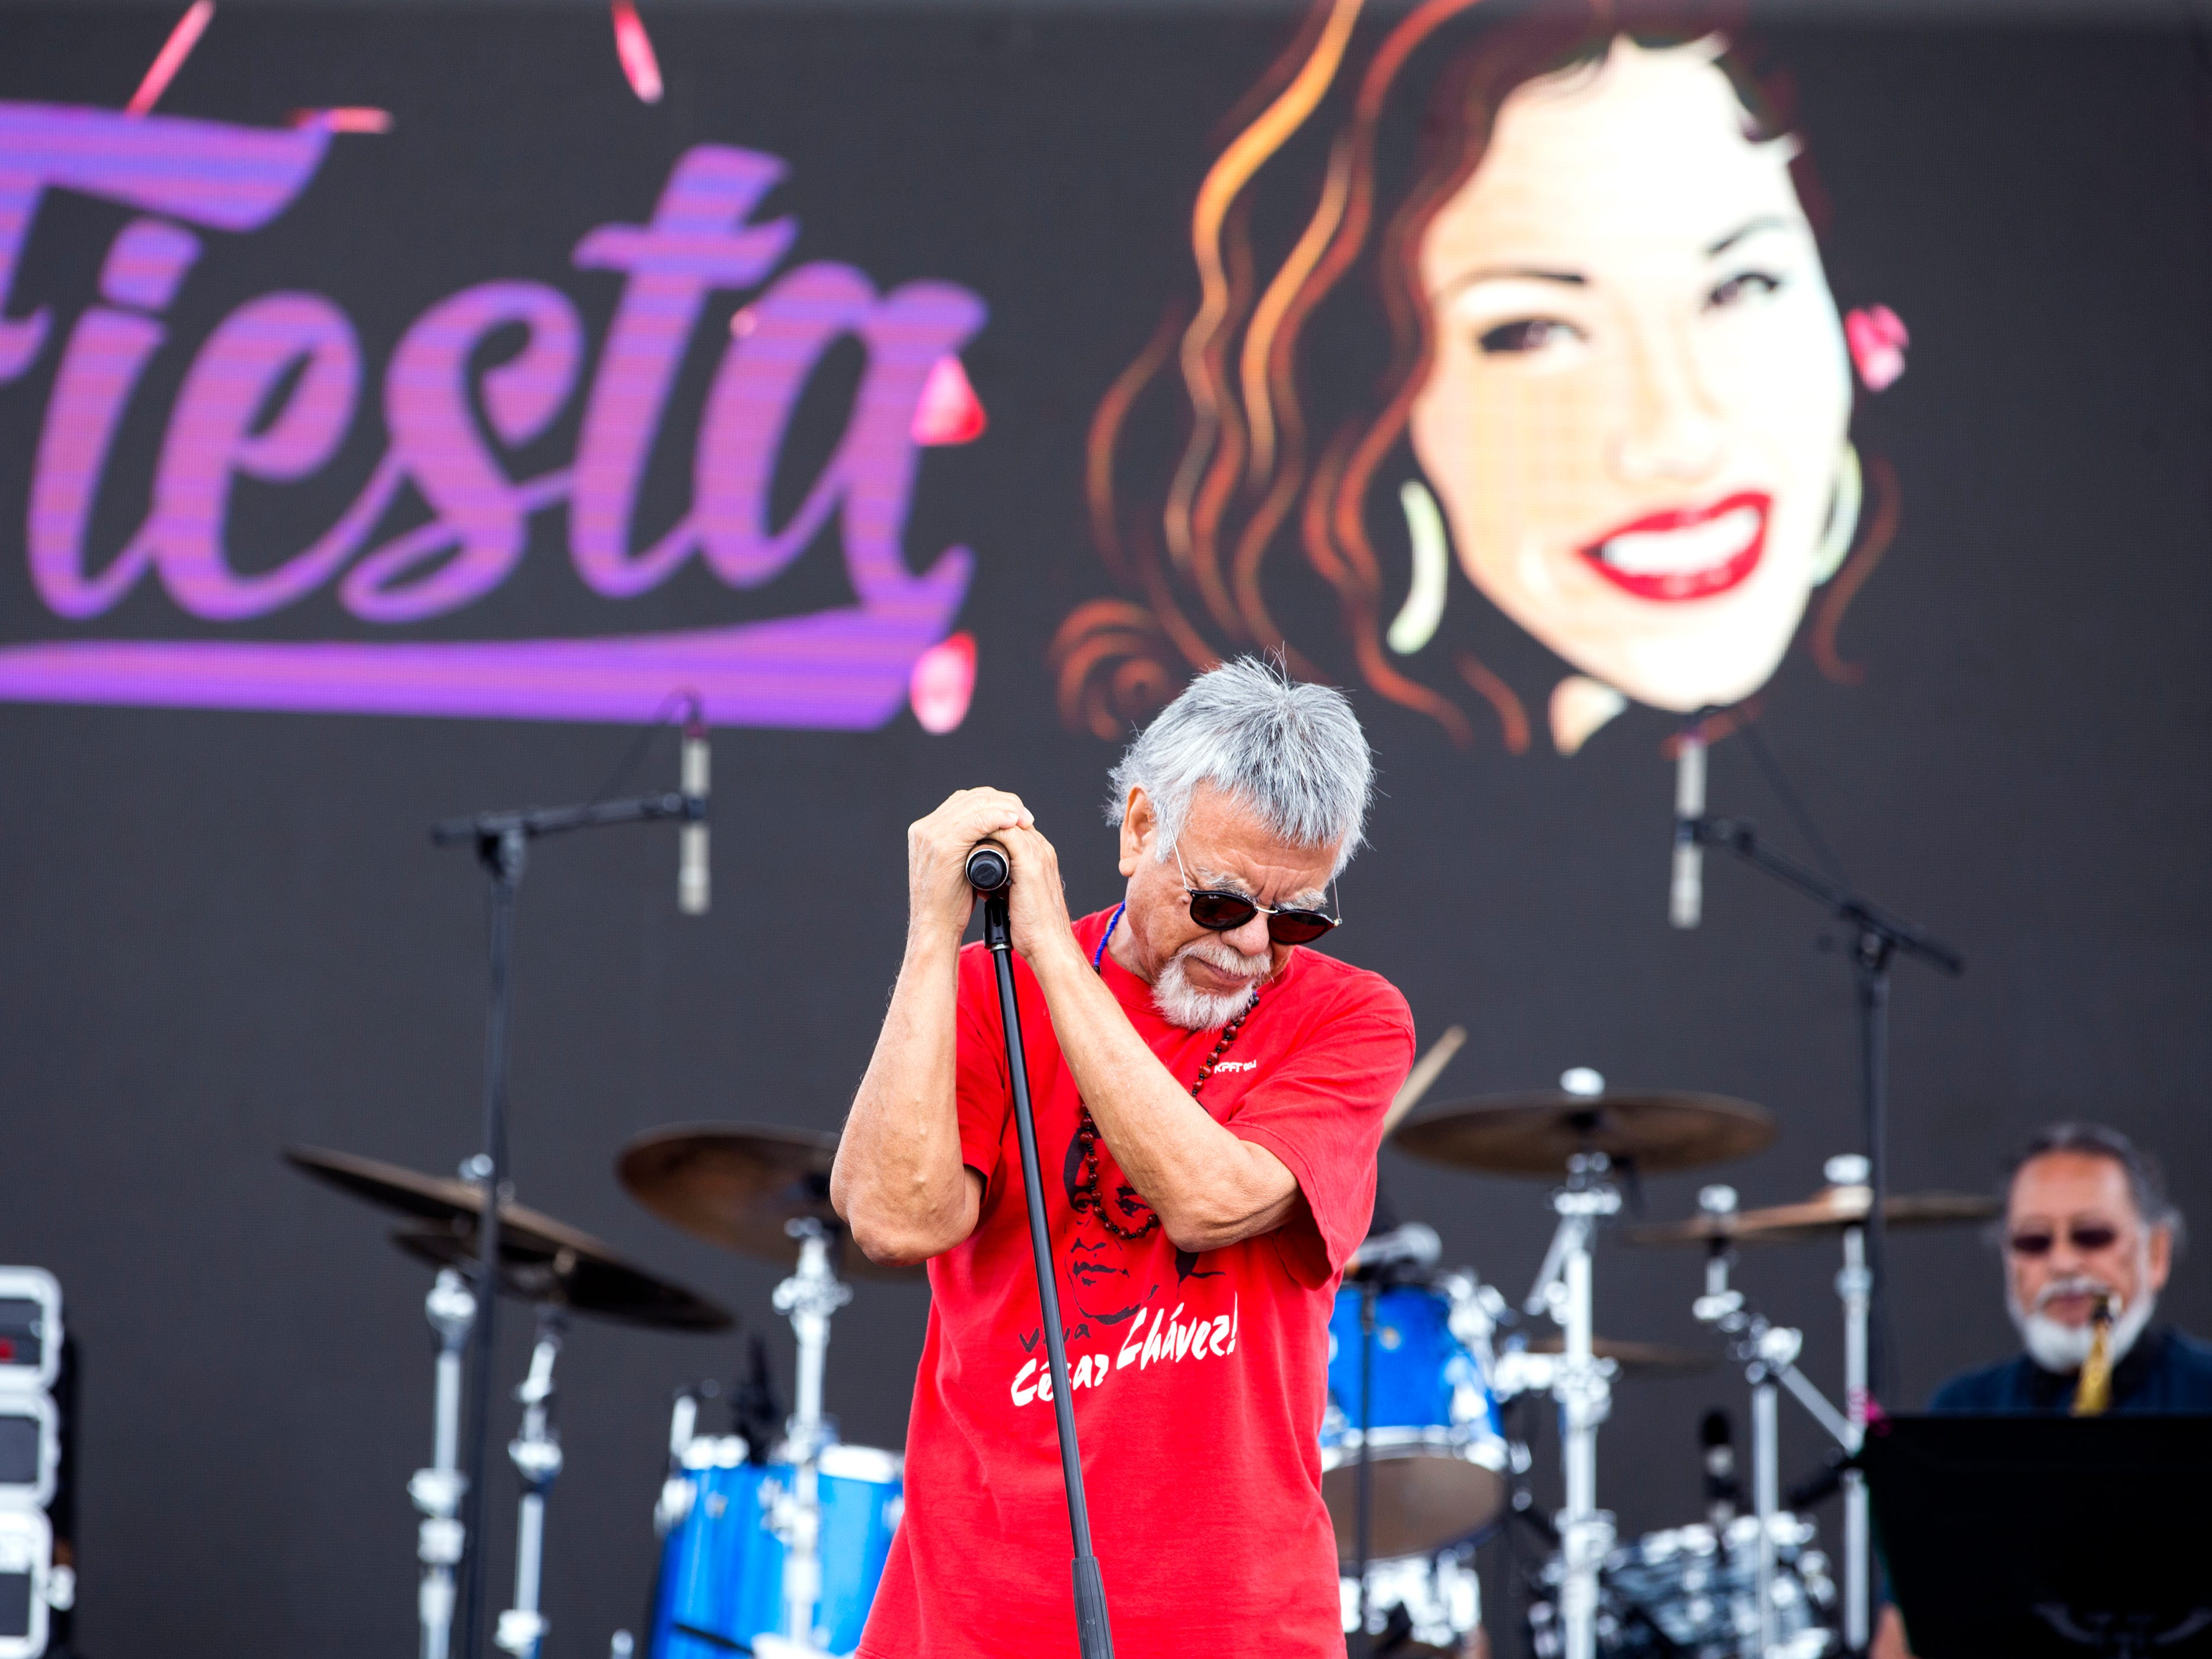 Little Joe performs during a soundcheck on Friday, April 12, 2019, at Fiesta de la Flor, a festival in honor of the late Tejano singer Selena Quintanilla-Perez. The two-day music event is held in Corpus Christi, Texas.